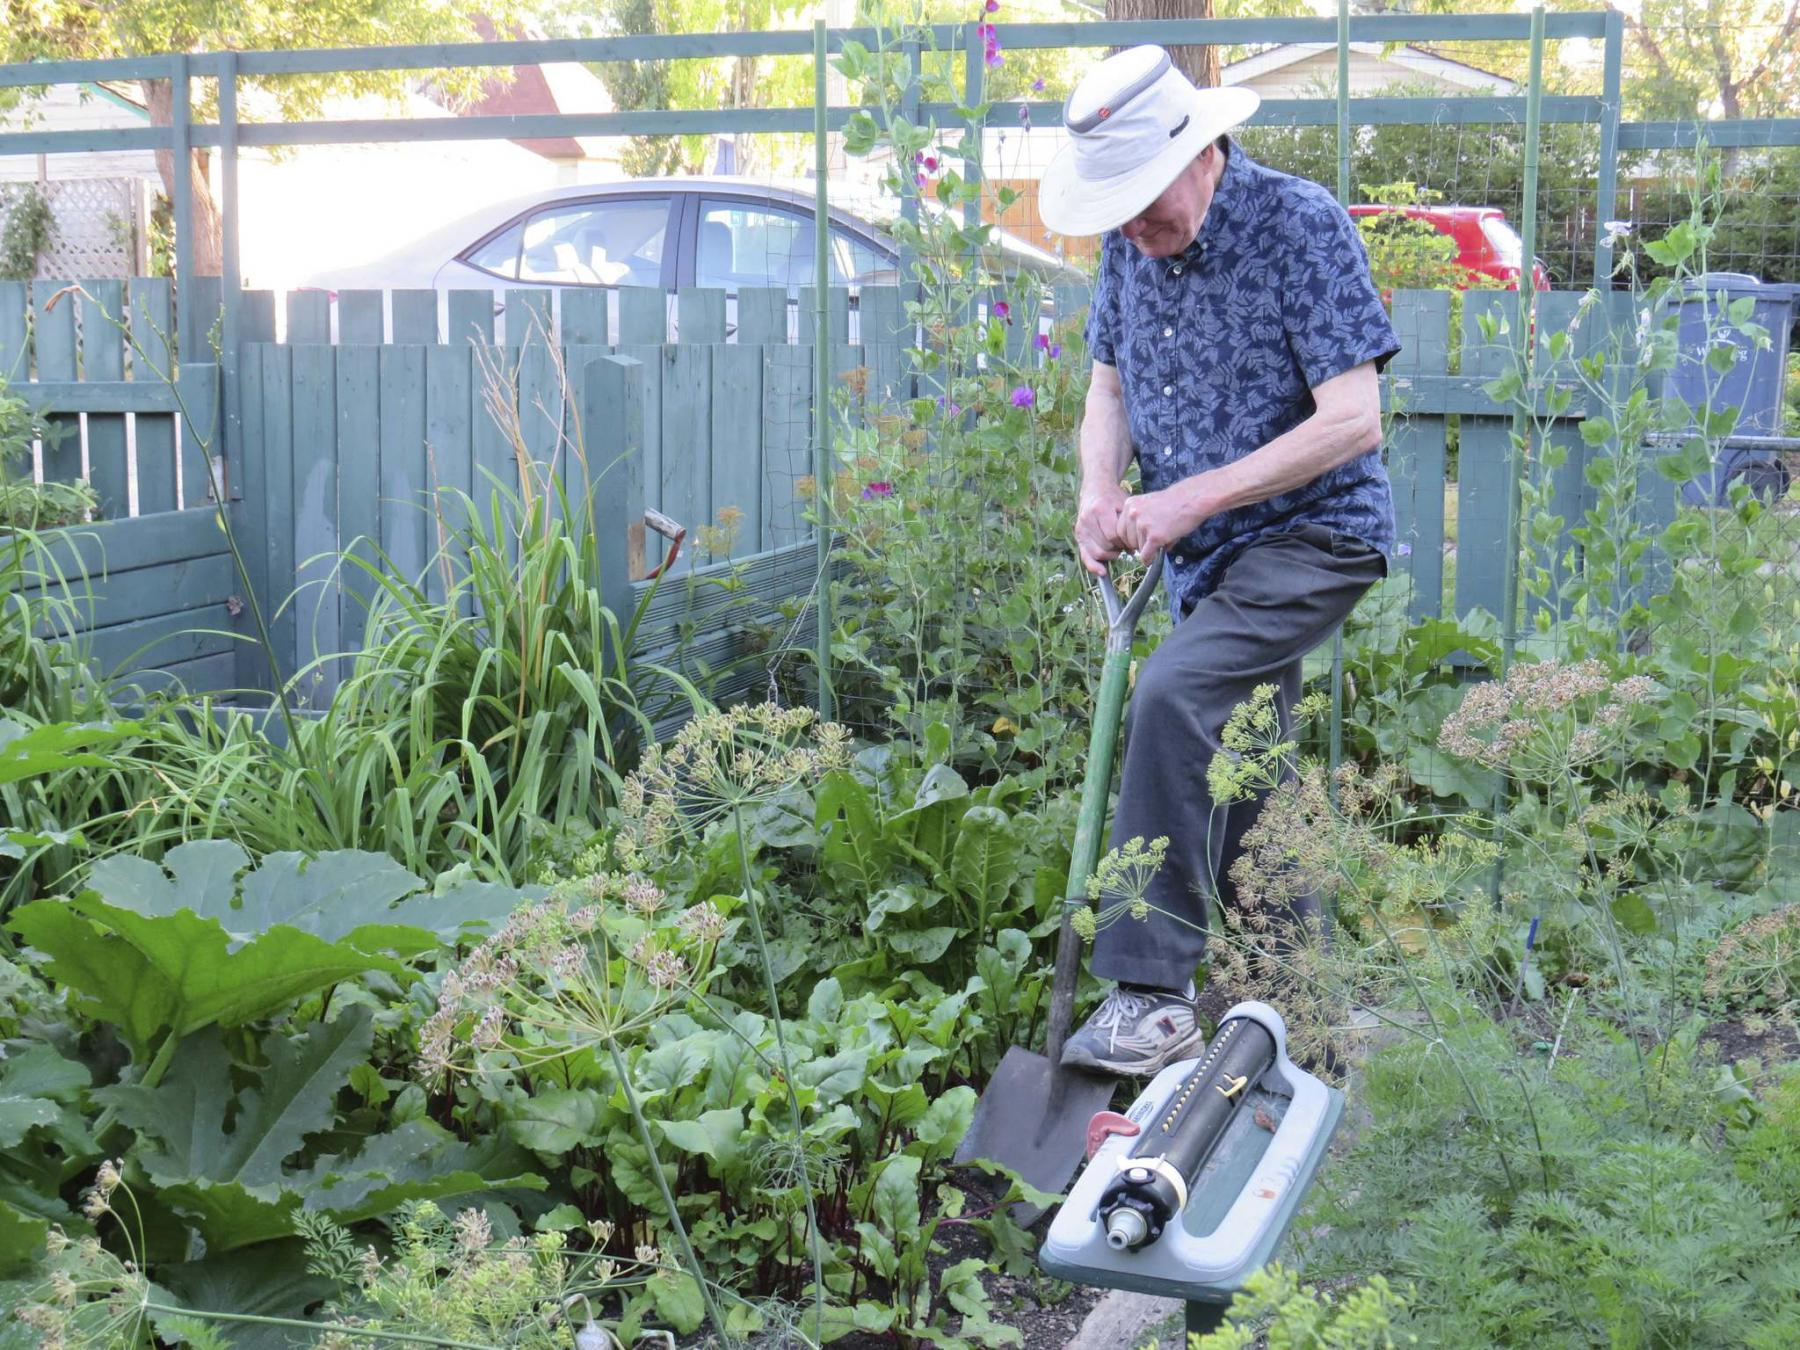 <p>Colleen Zacharias / Winnipeg Free Press</p><p>Bill Linton, 87, says gardening keeps him feeling young.</p>